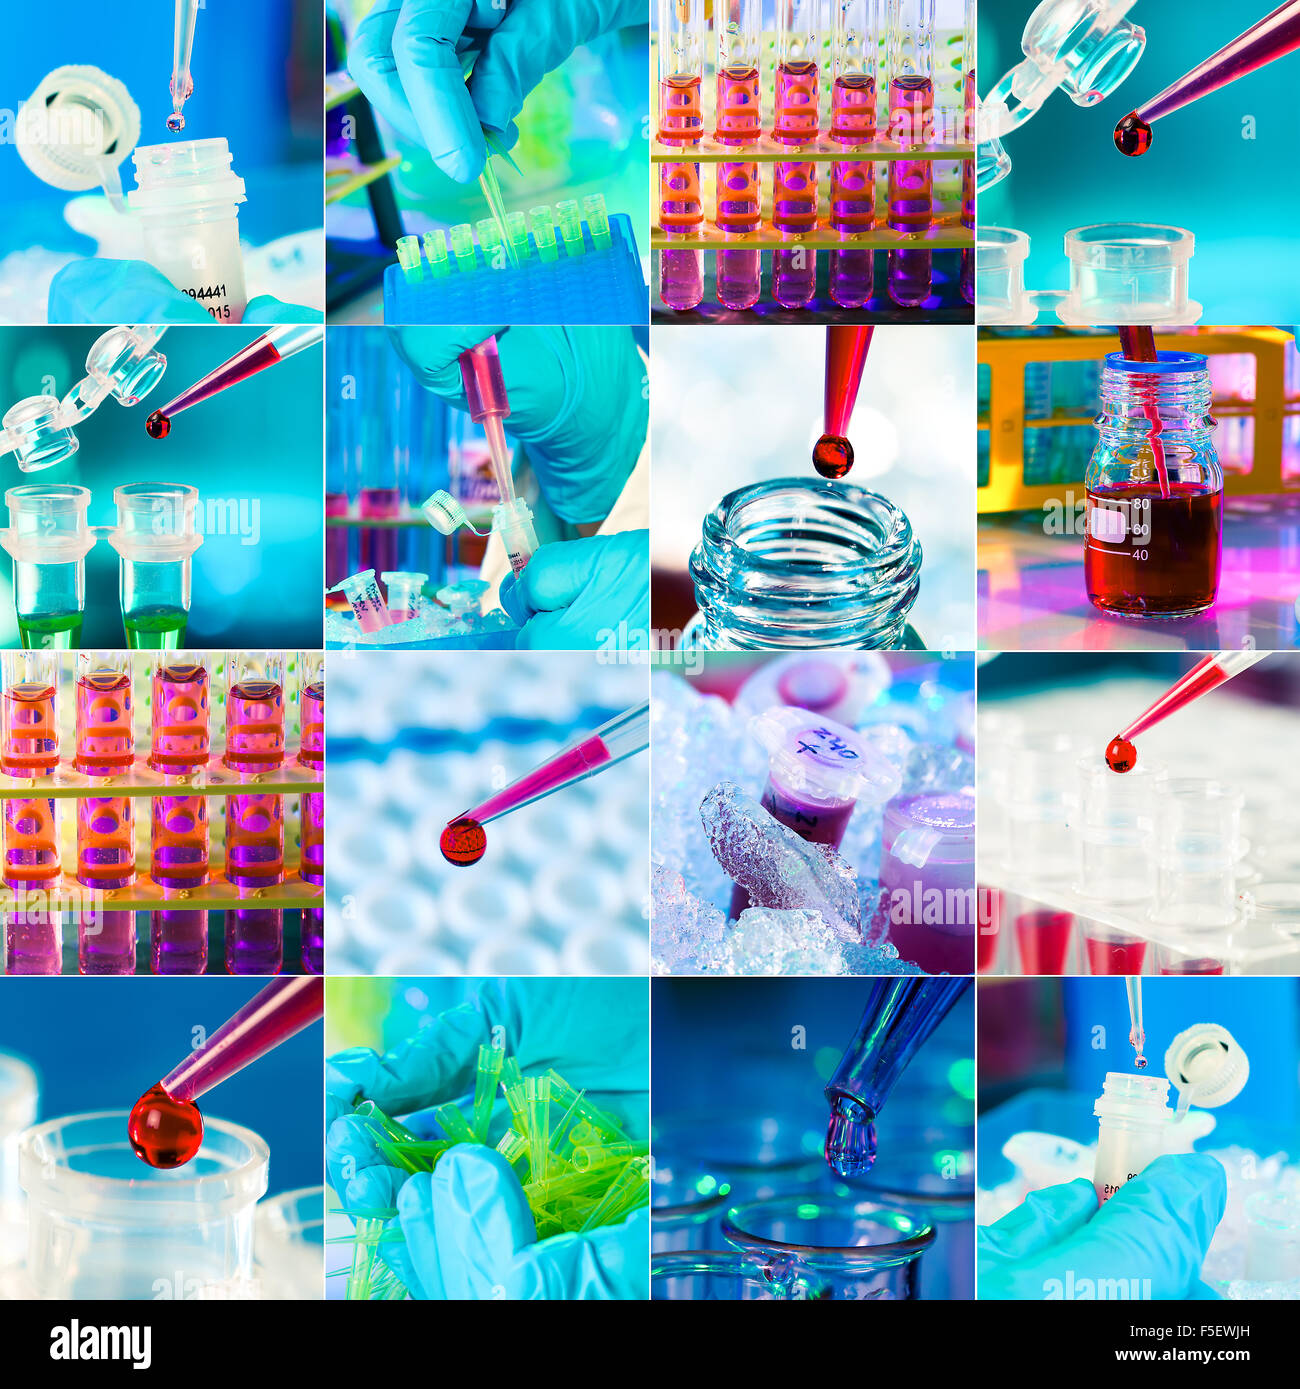 Work in the microbiology laboratory, medical research set - Stock Image